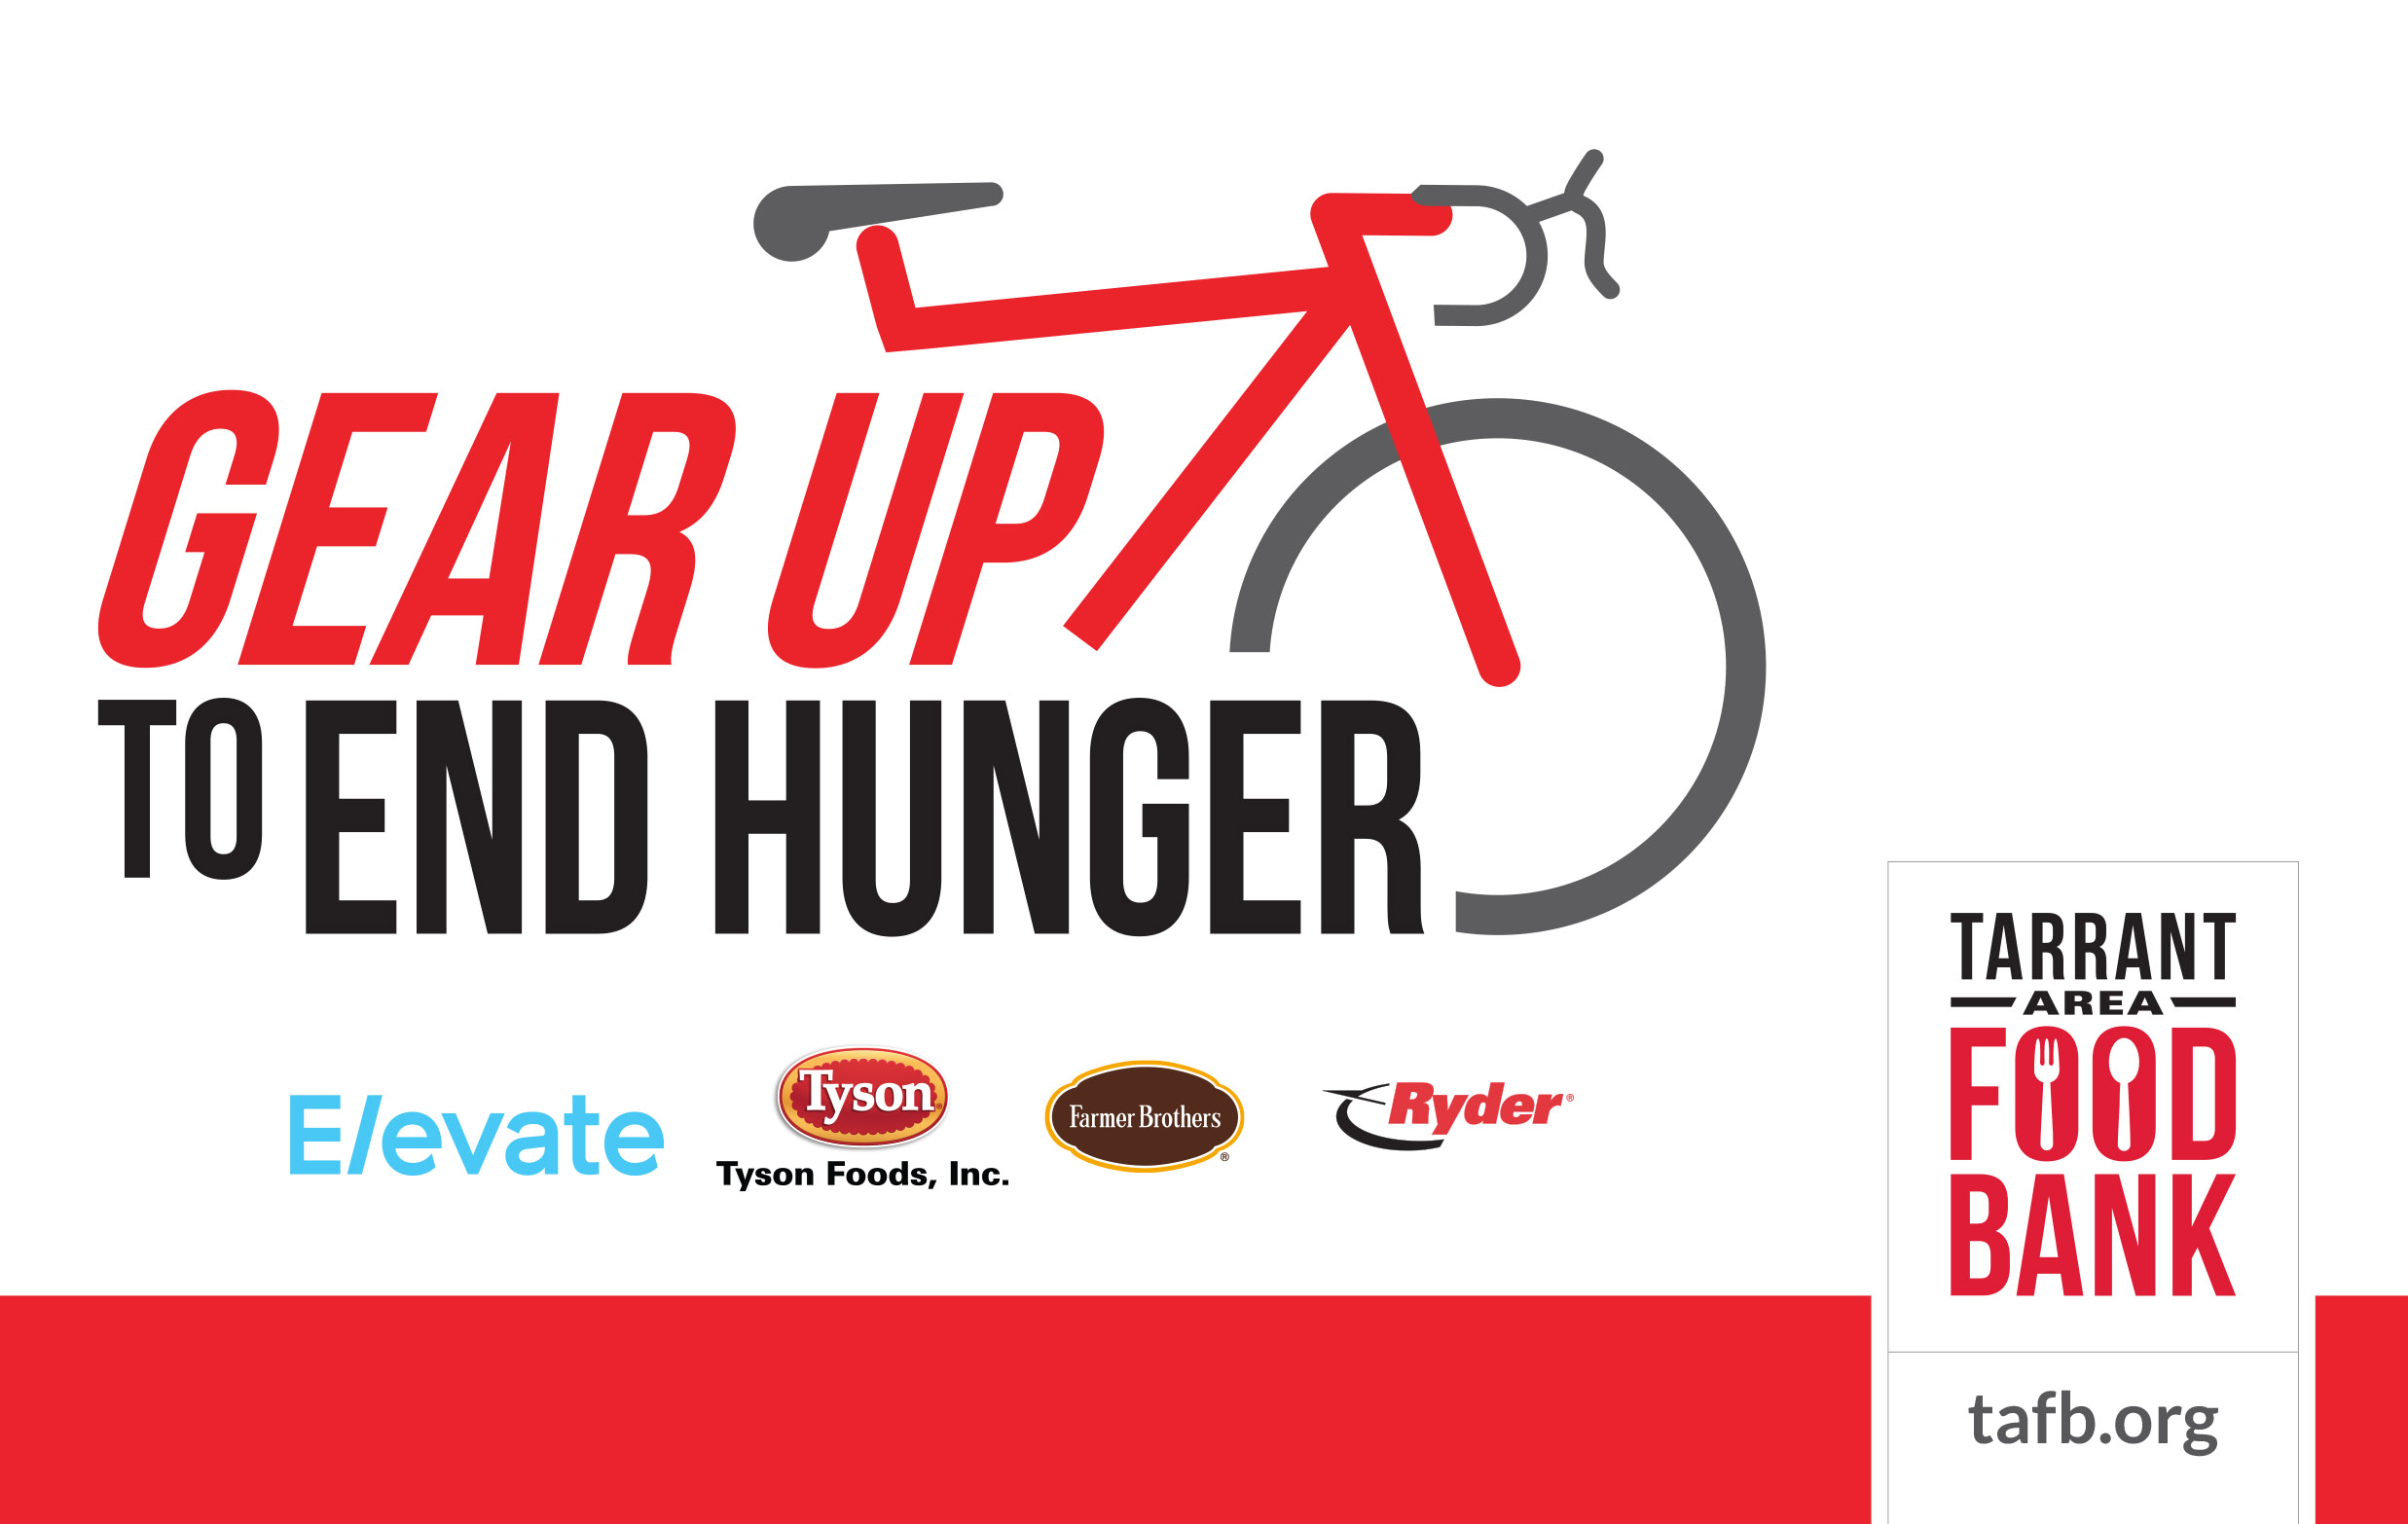 TAFB Gear Up to End Hunger